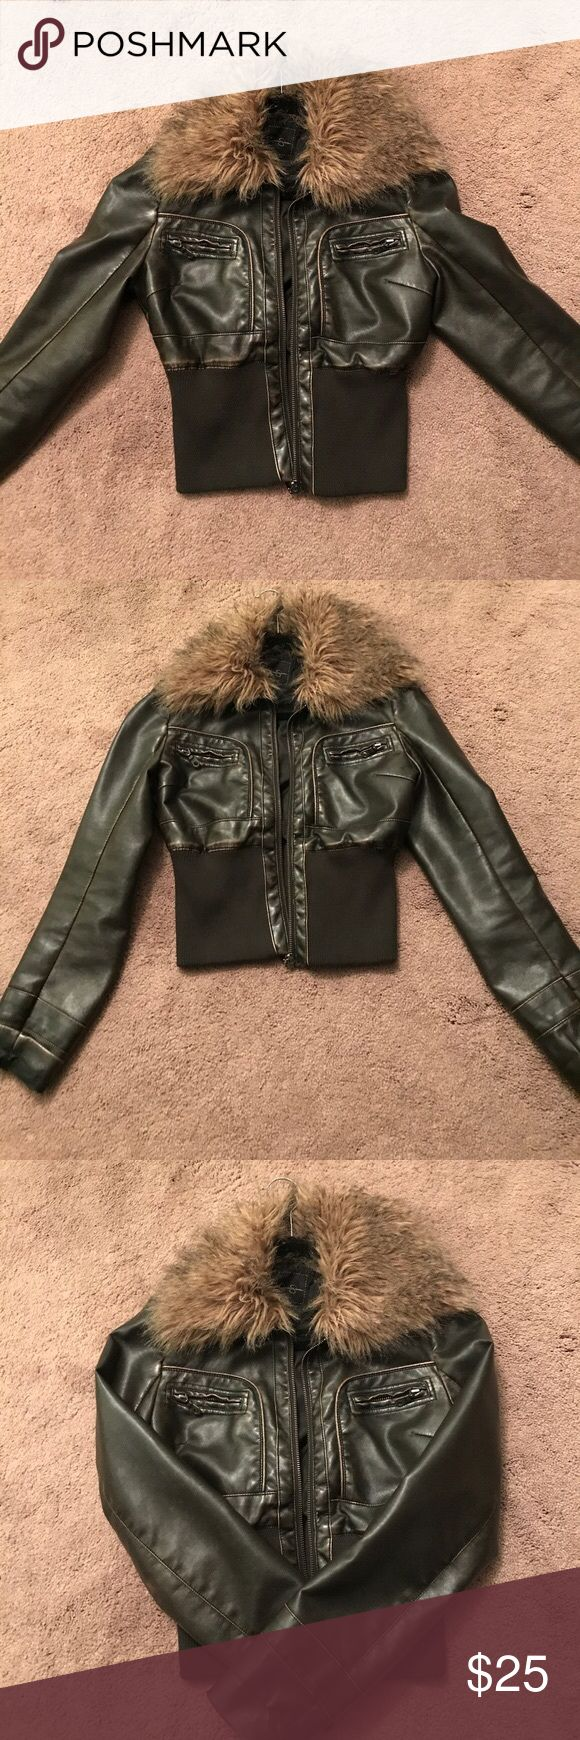 ❄️Jessica Simpson Faux Leather Bomber Jacket ❄️ Worn few times- Excellent Condition - Leather is super soft ! Jessica Simpson bomber jacket, dark brown leather with faux fur collar. Pockets on chest. Jessica Simpson Jackets & Coats